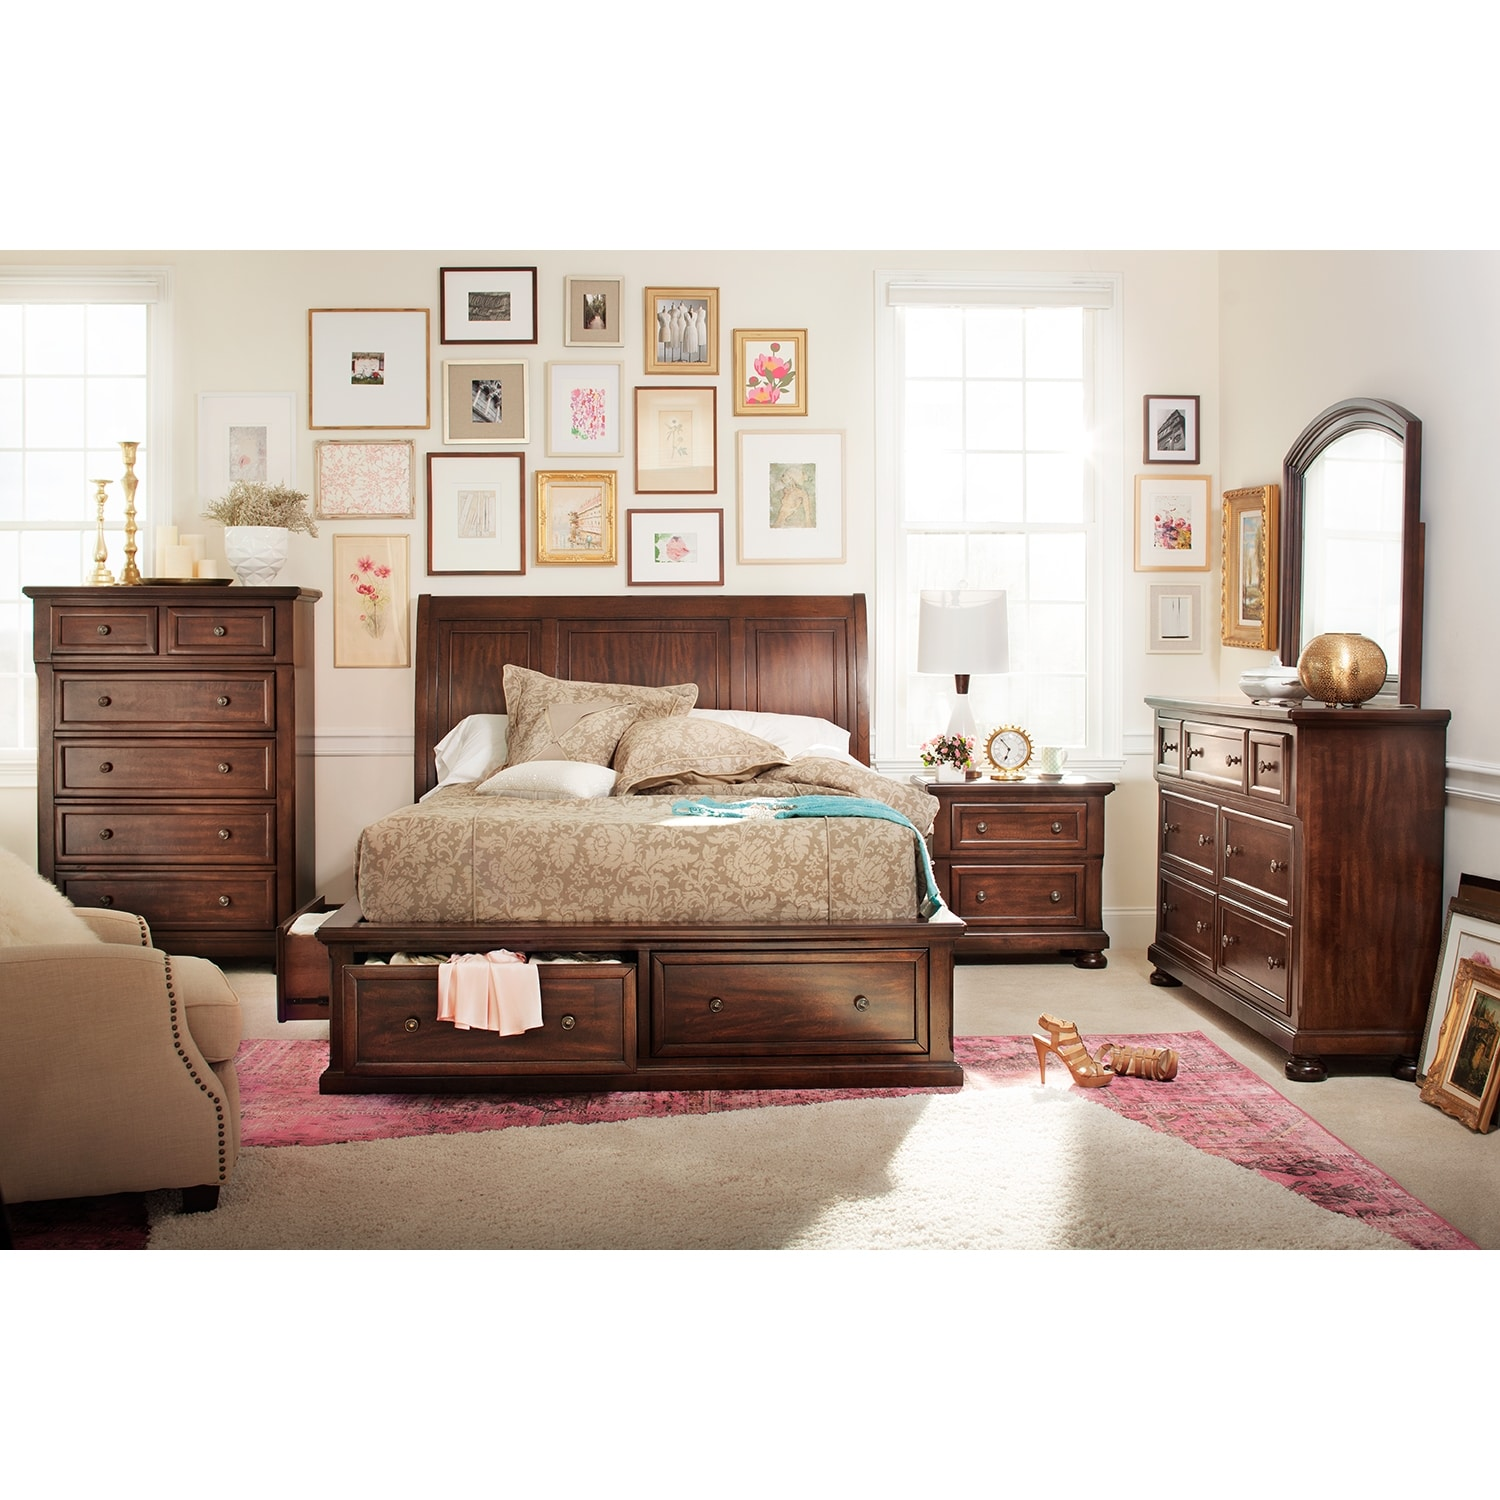 hanover 7 piece queen storage bedroom set cherry value 17688 | 373846 fit inside 7c65 65 composite to center center 7c65 65 background color white